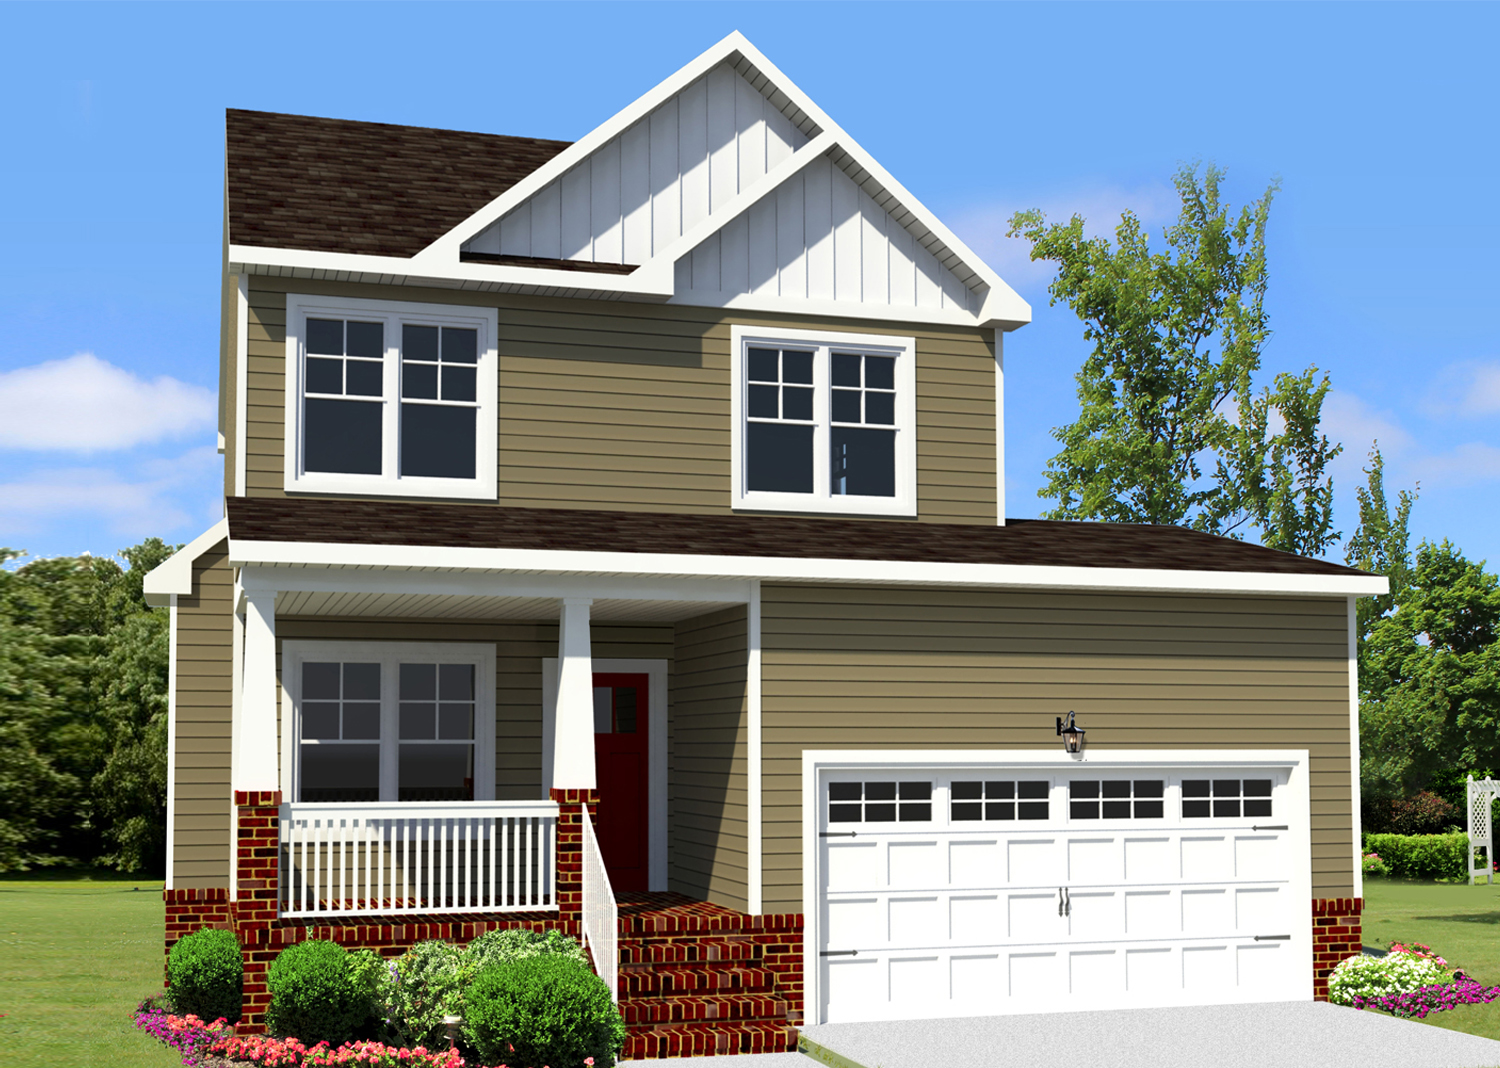 Hillcrest II New Construction Homes for Sale Suffolk VA AB Homes